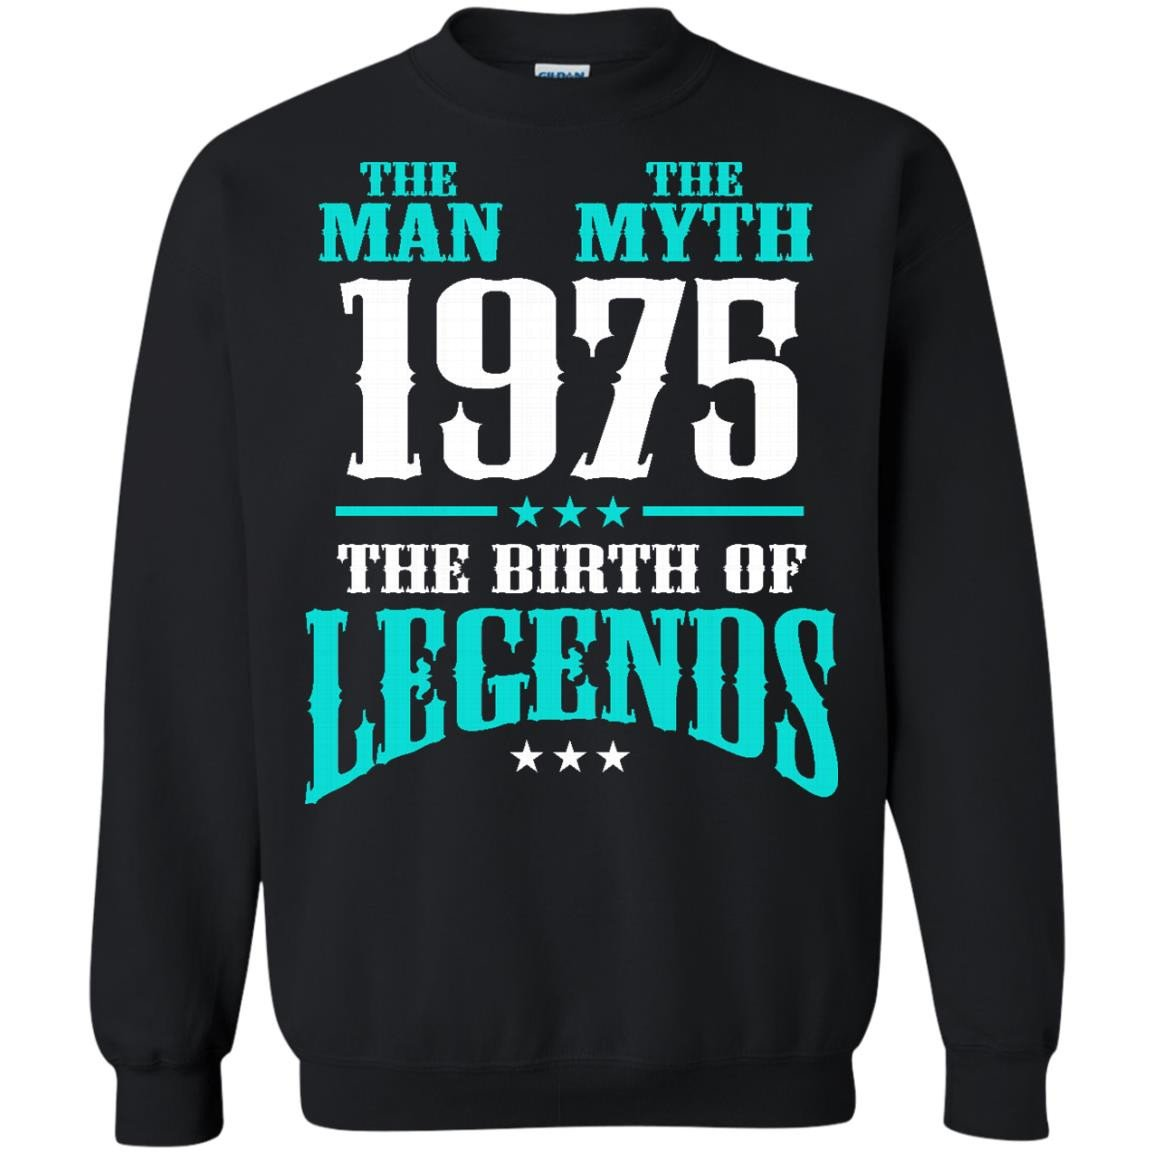 1975 Shirts The Man The Myth The Birth Of Legends T-shirts Hoodies Sweatshirts